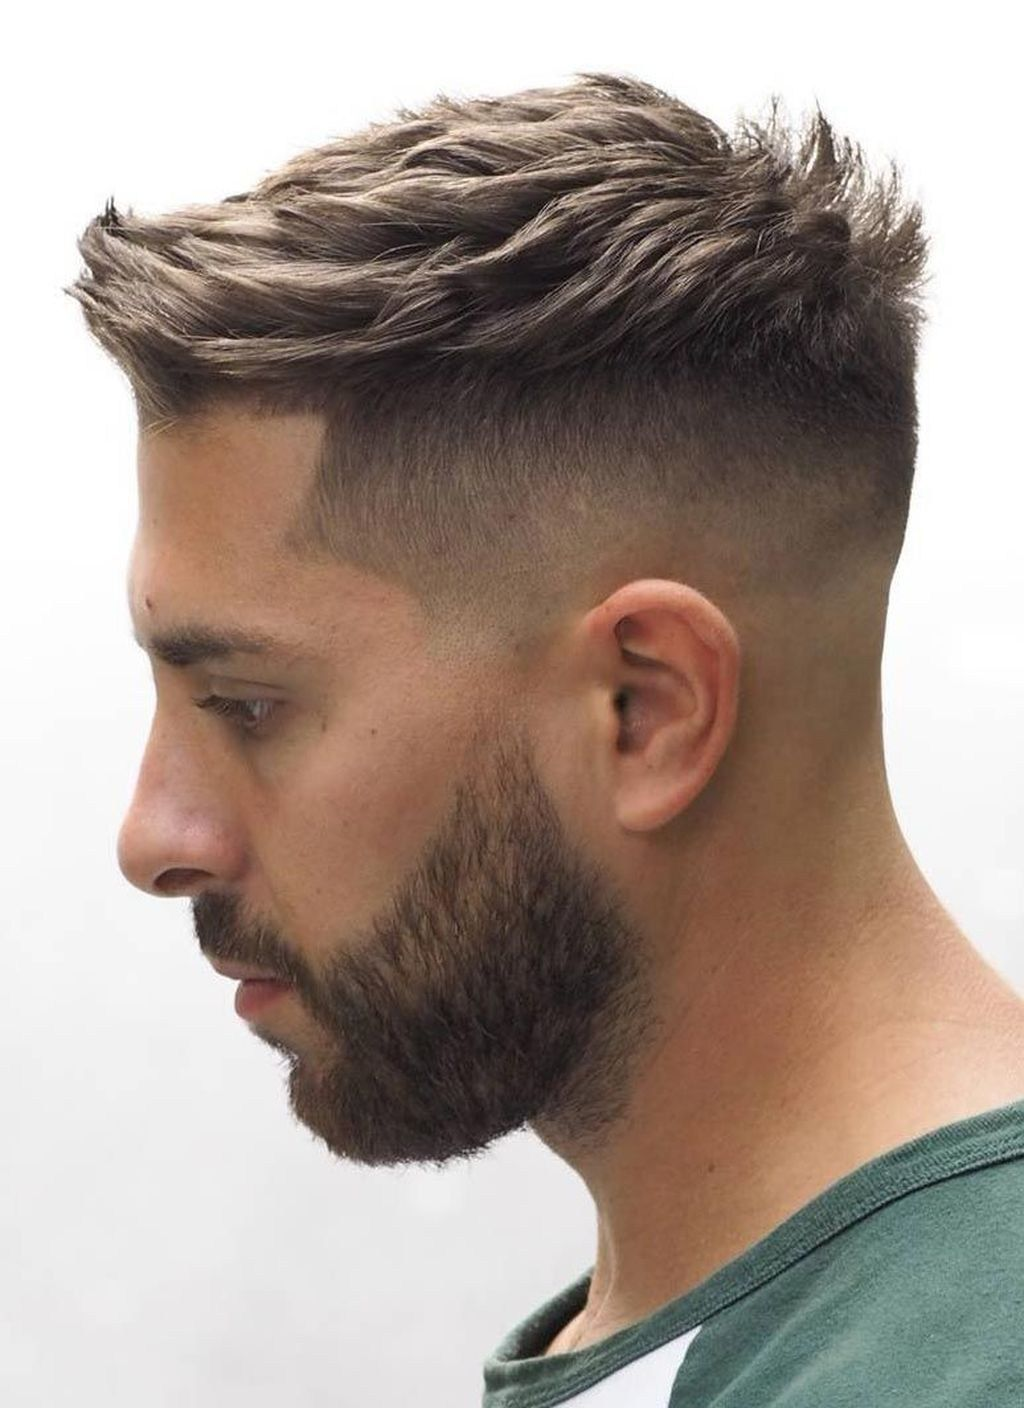 Lovely Haircuts Ideas For Men That Looks Elegant23 Mens Haircuts Short High And Tight Haircut Haircuts For Men